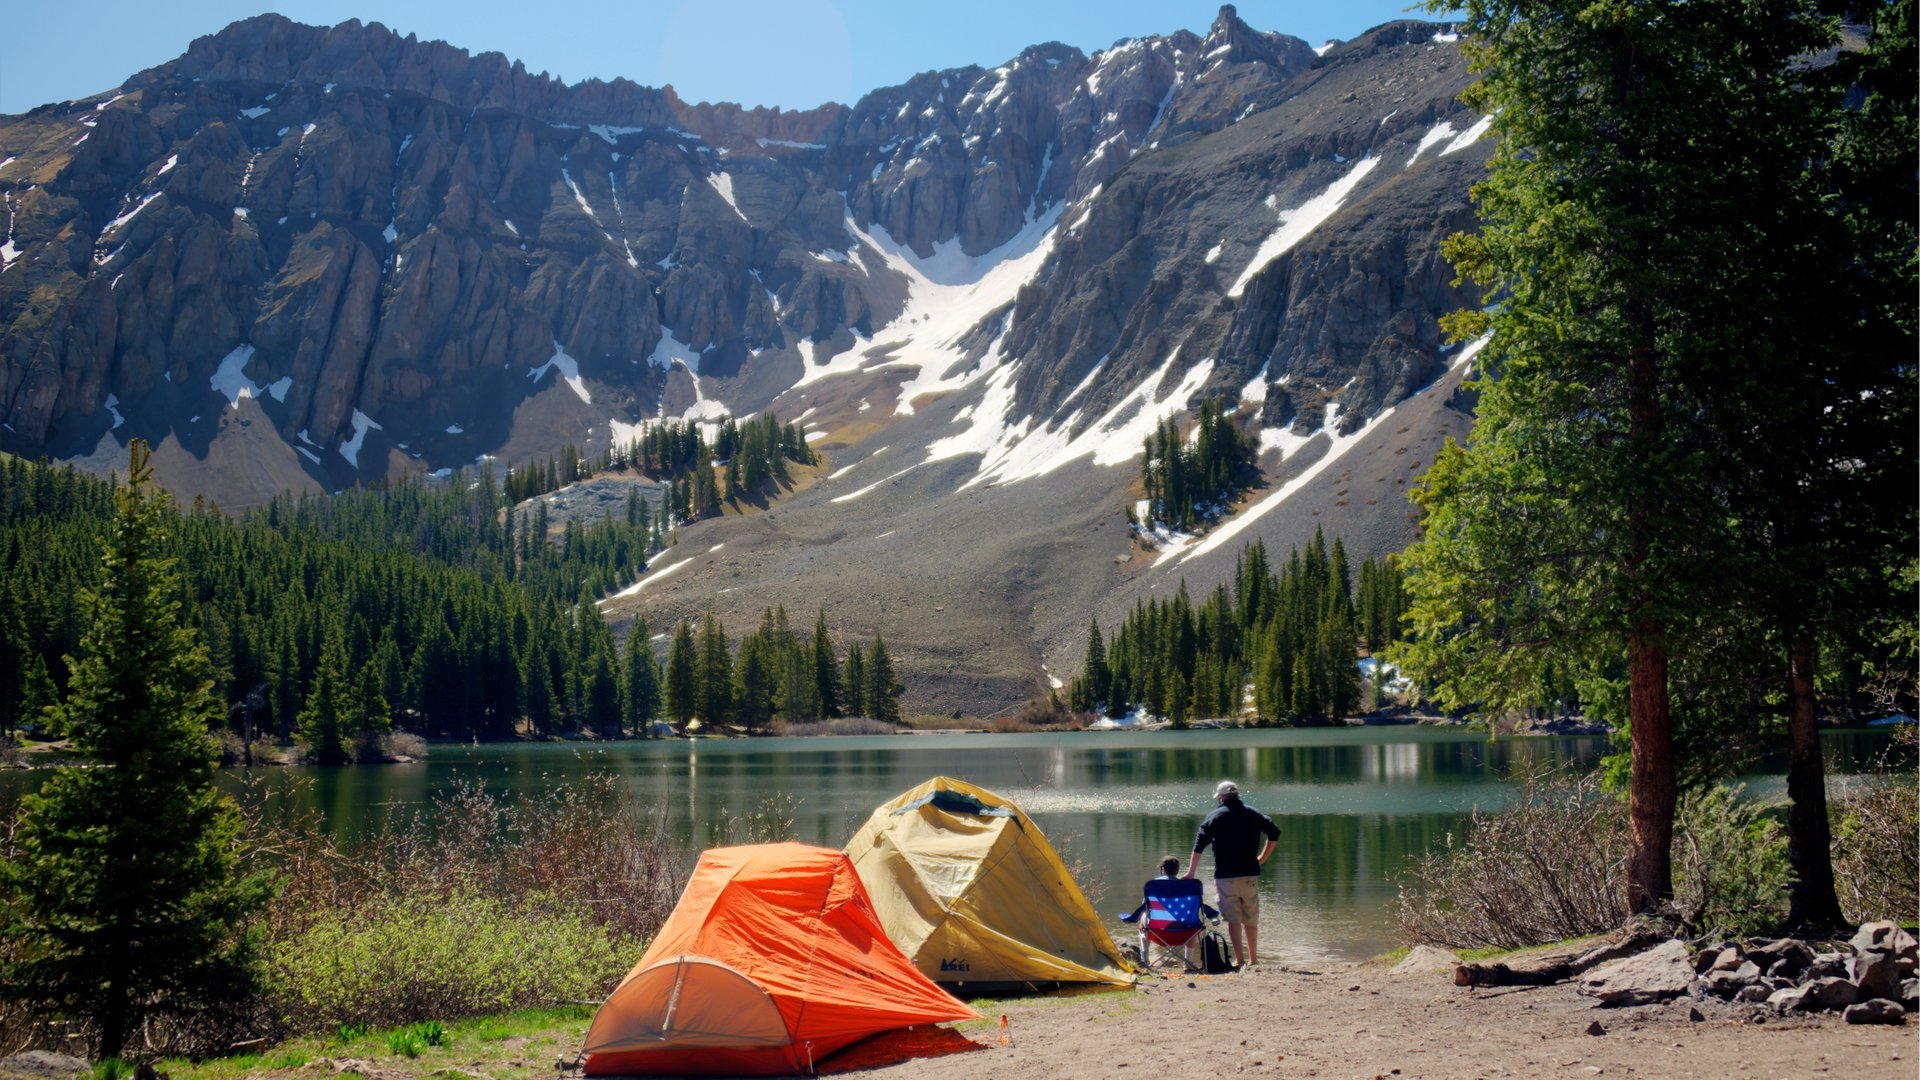 Alta Lakes in Colorado 2020 - Best Time